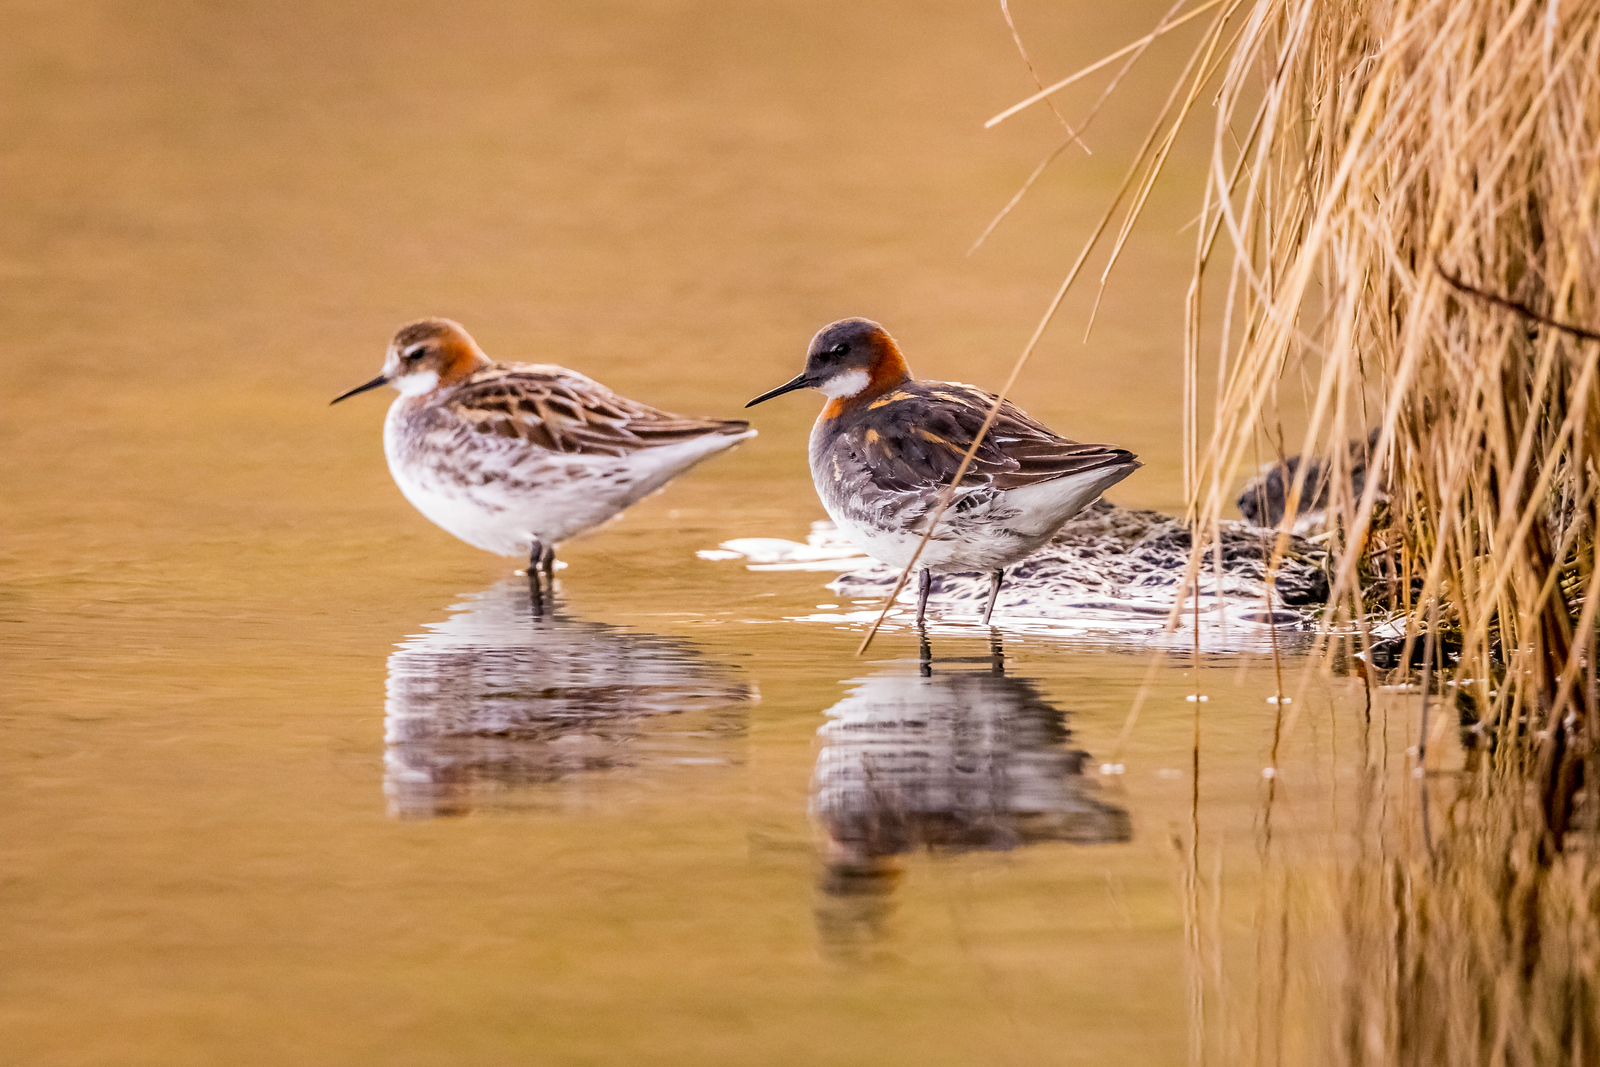 Golden reflections - Red-necked Phalarope, Mývatn, Iceland